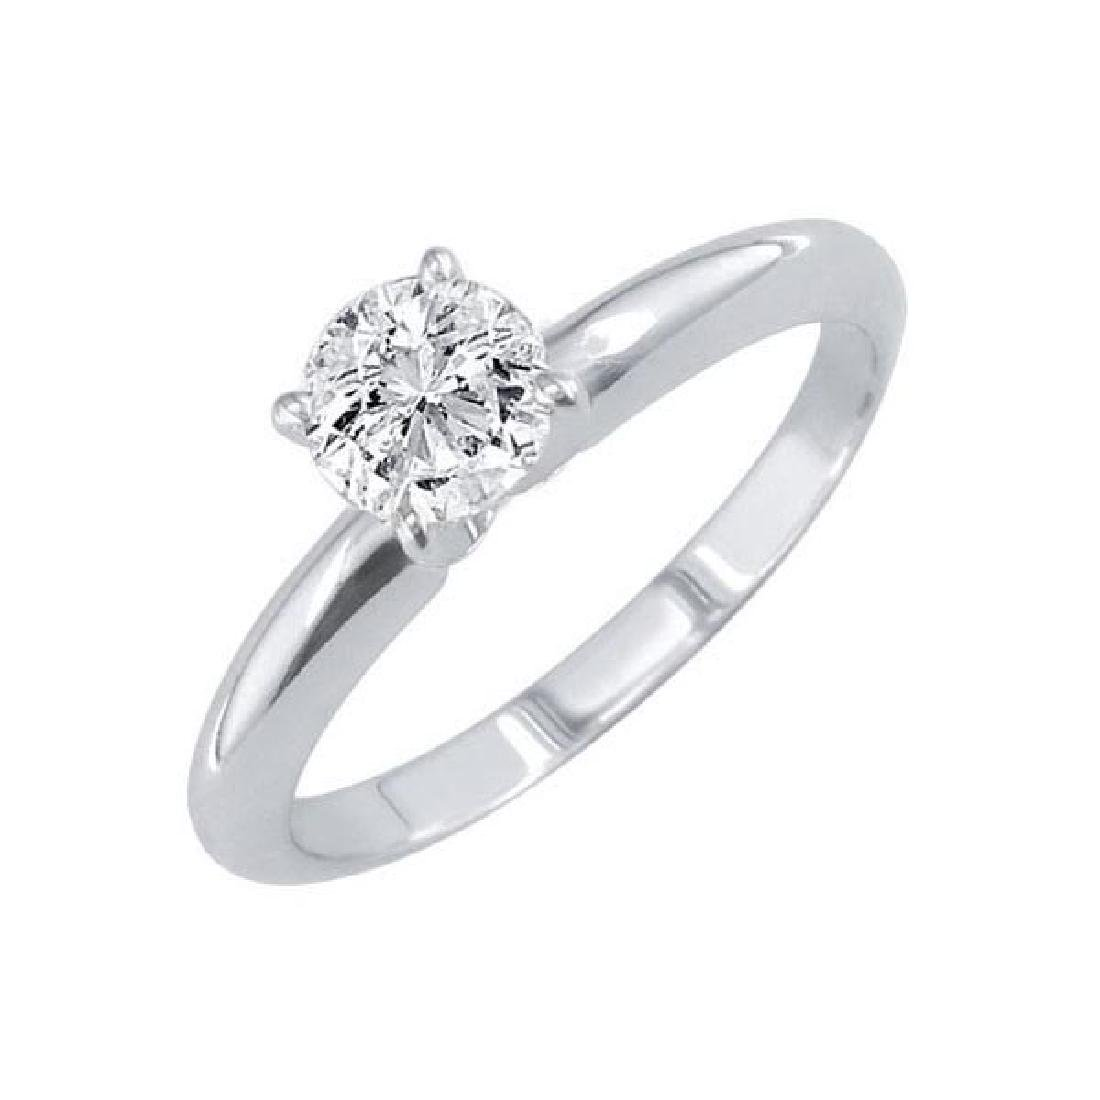 Certified 0.62 CTW Round Diamond Solitaire 14k Ring D/S